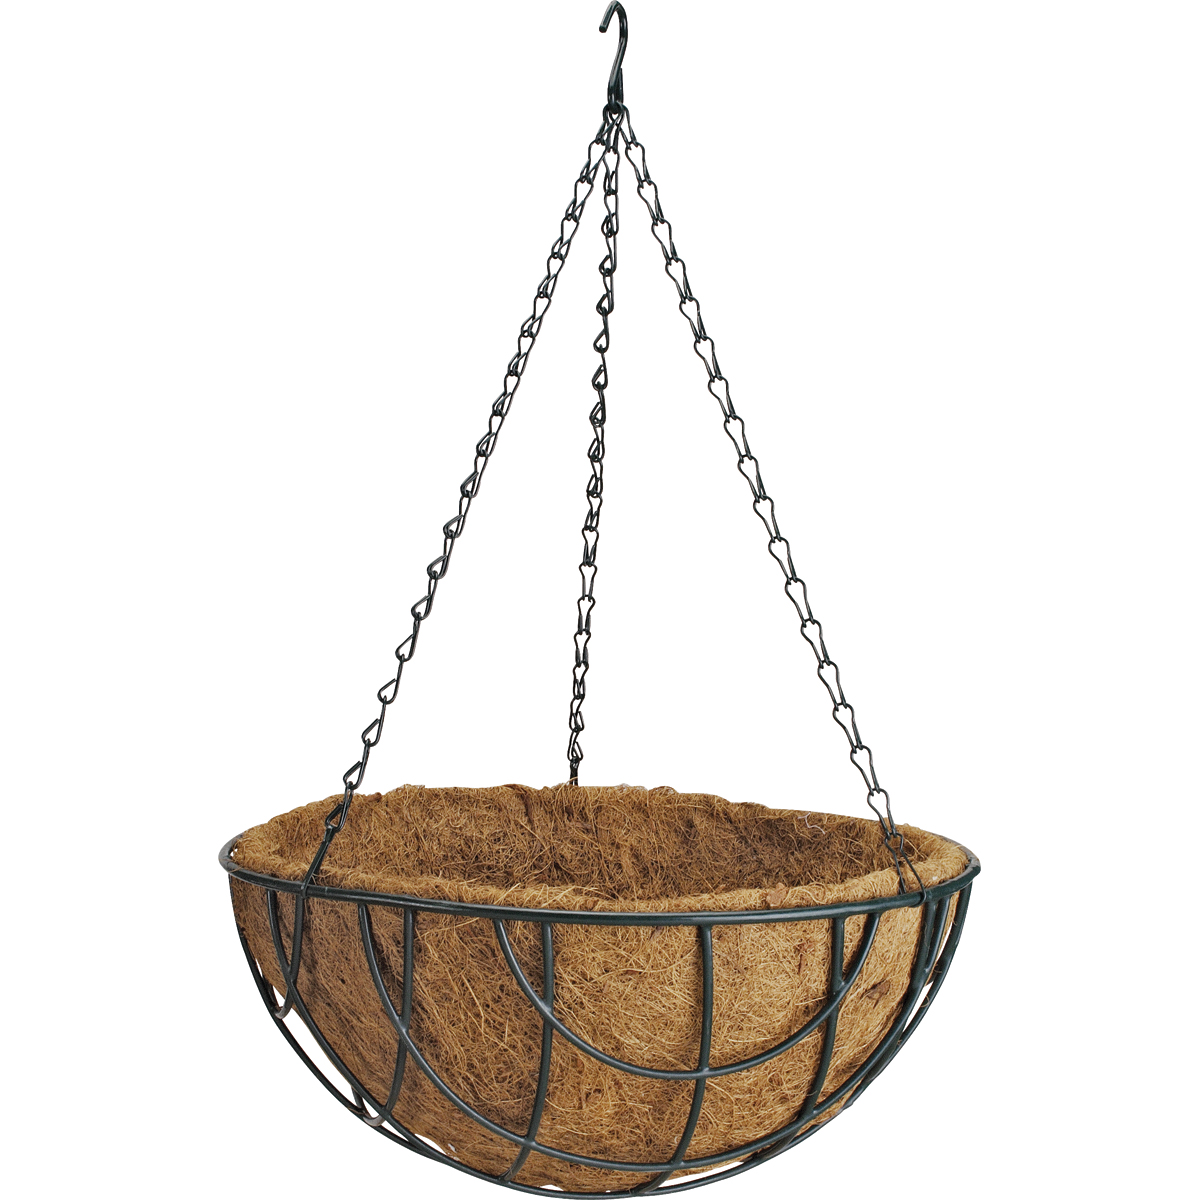 Picture of Landscapers Select GB-4337-3L Hanging Planter with Natural Coconut Liner, Circle, 22 lb Capacity, Matte Black